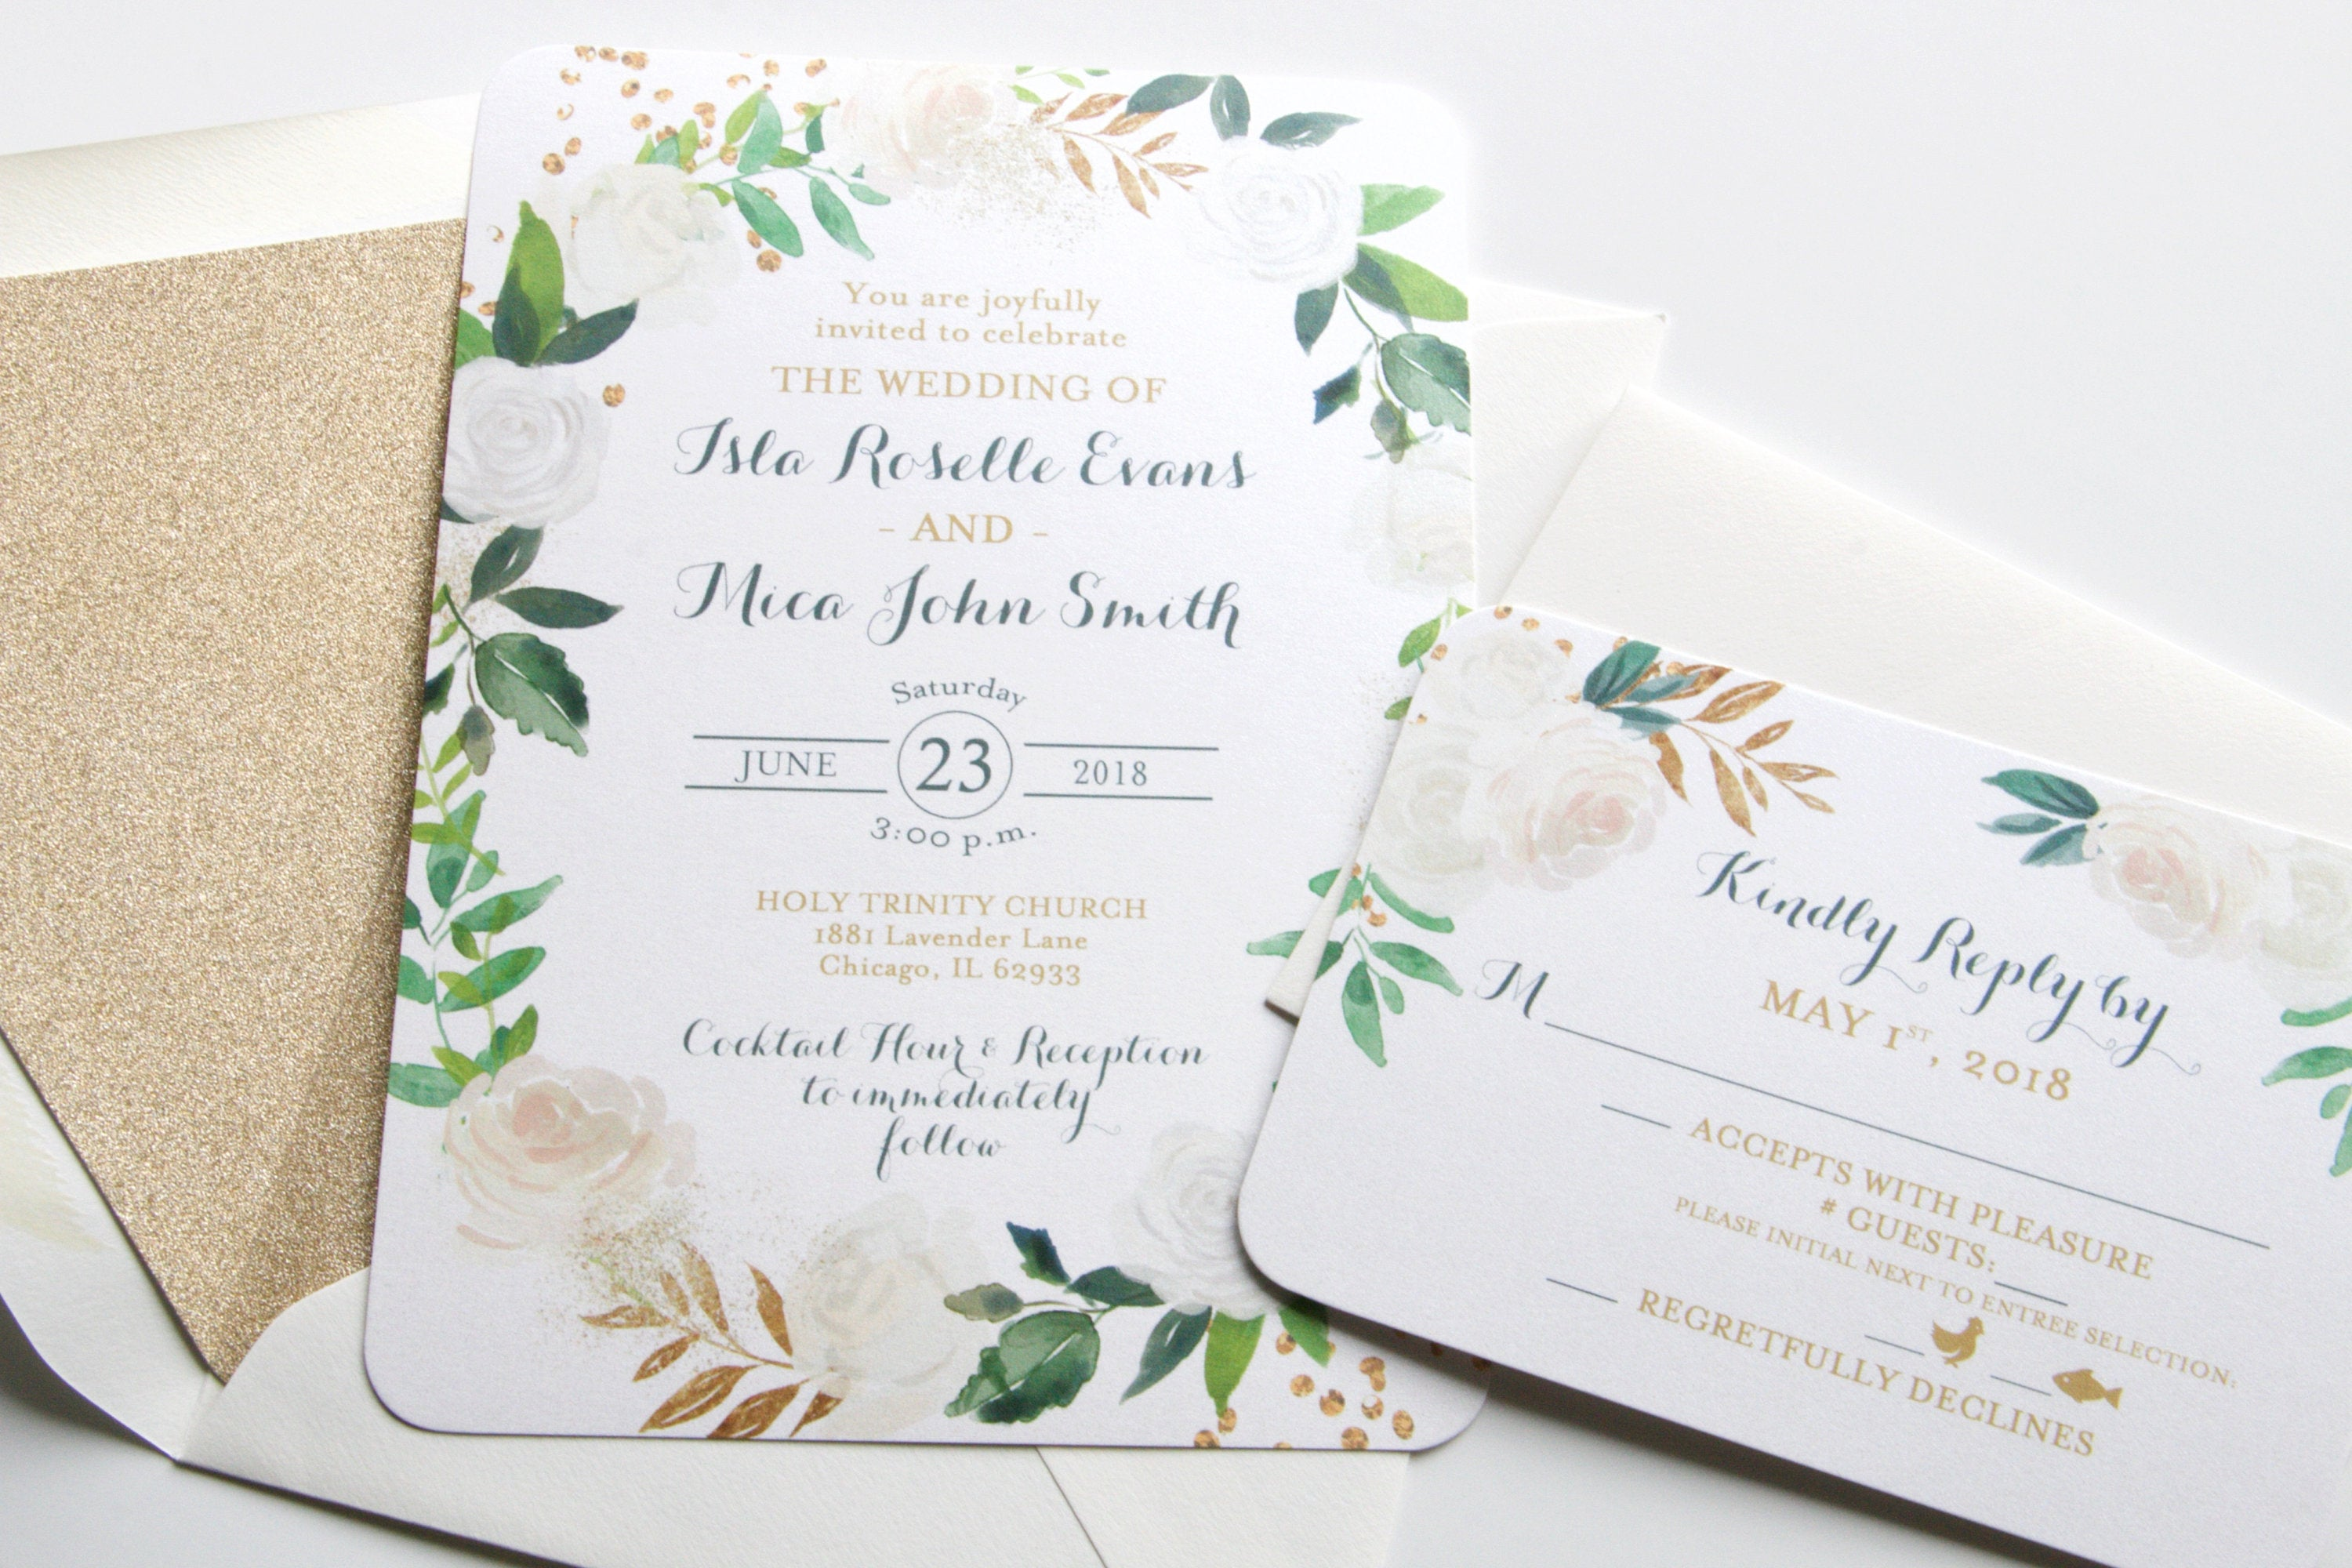 Printed Wedding Invitations: Printed Wedding Invitations, White Roses Floral, Greenery